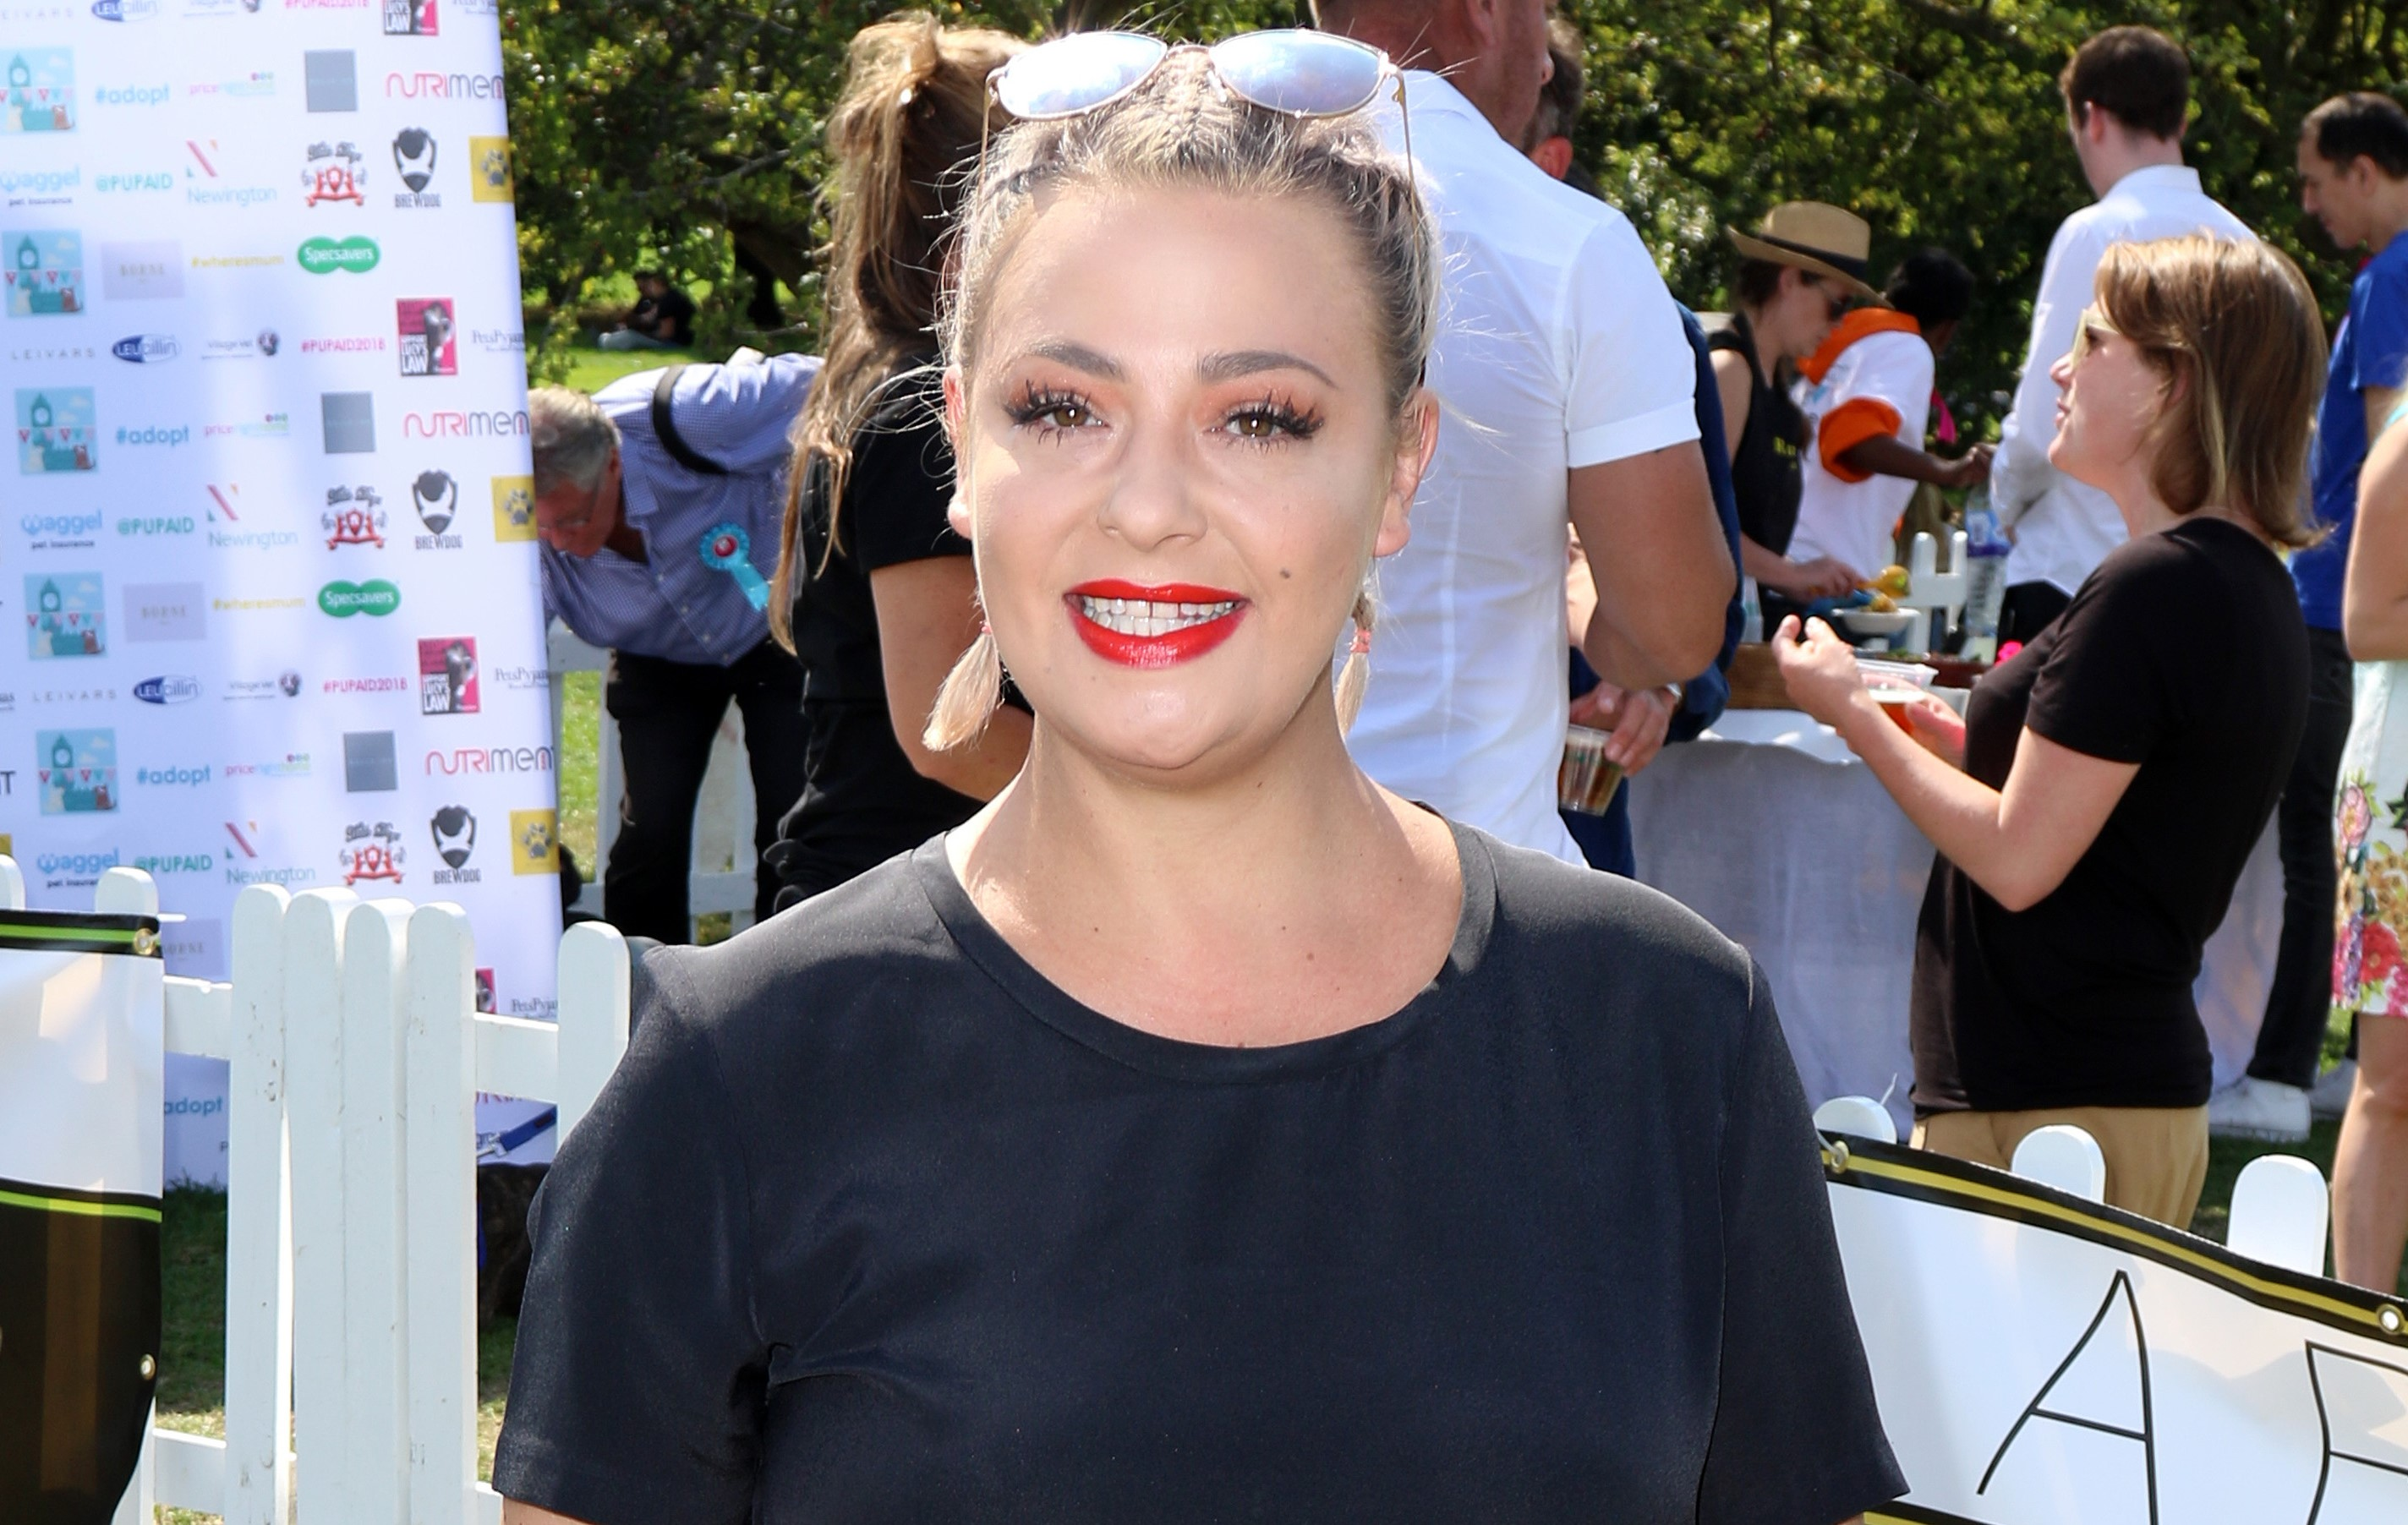 Lisa Armstrong 'plans break-up show following split from Ant McPartlin'